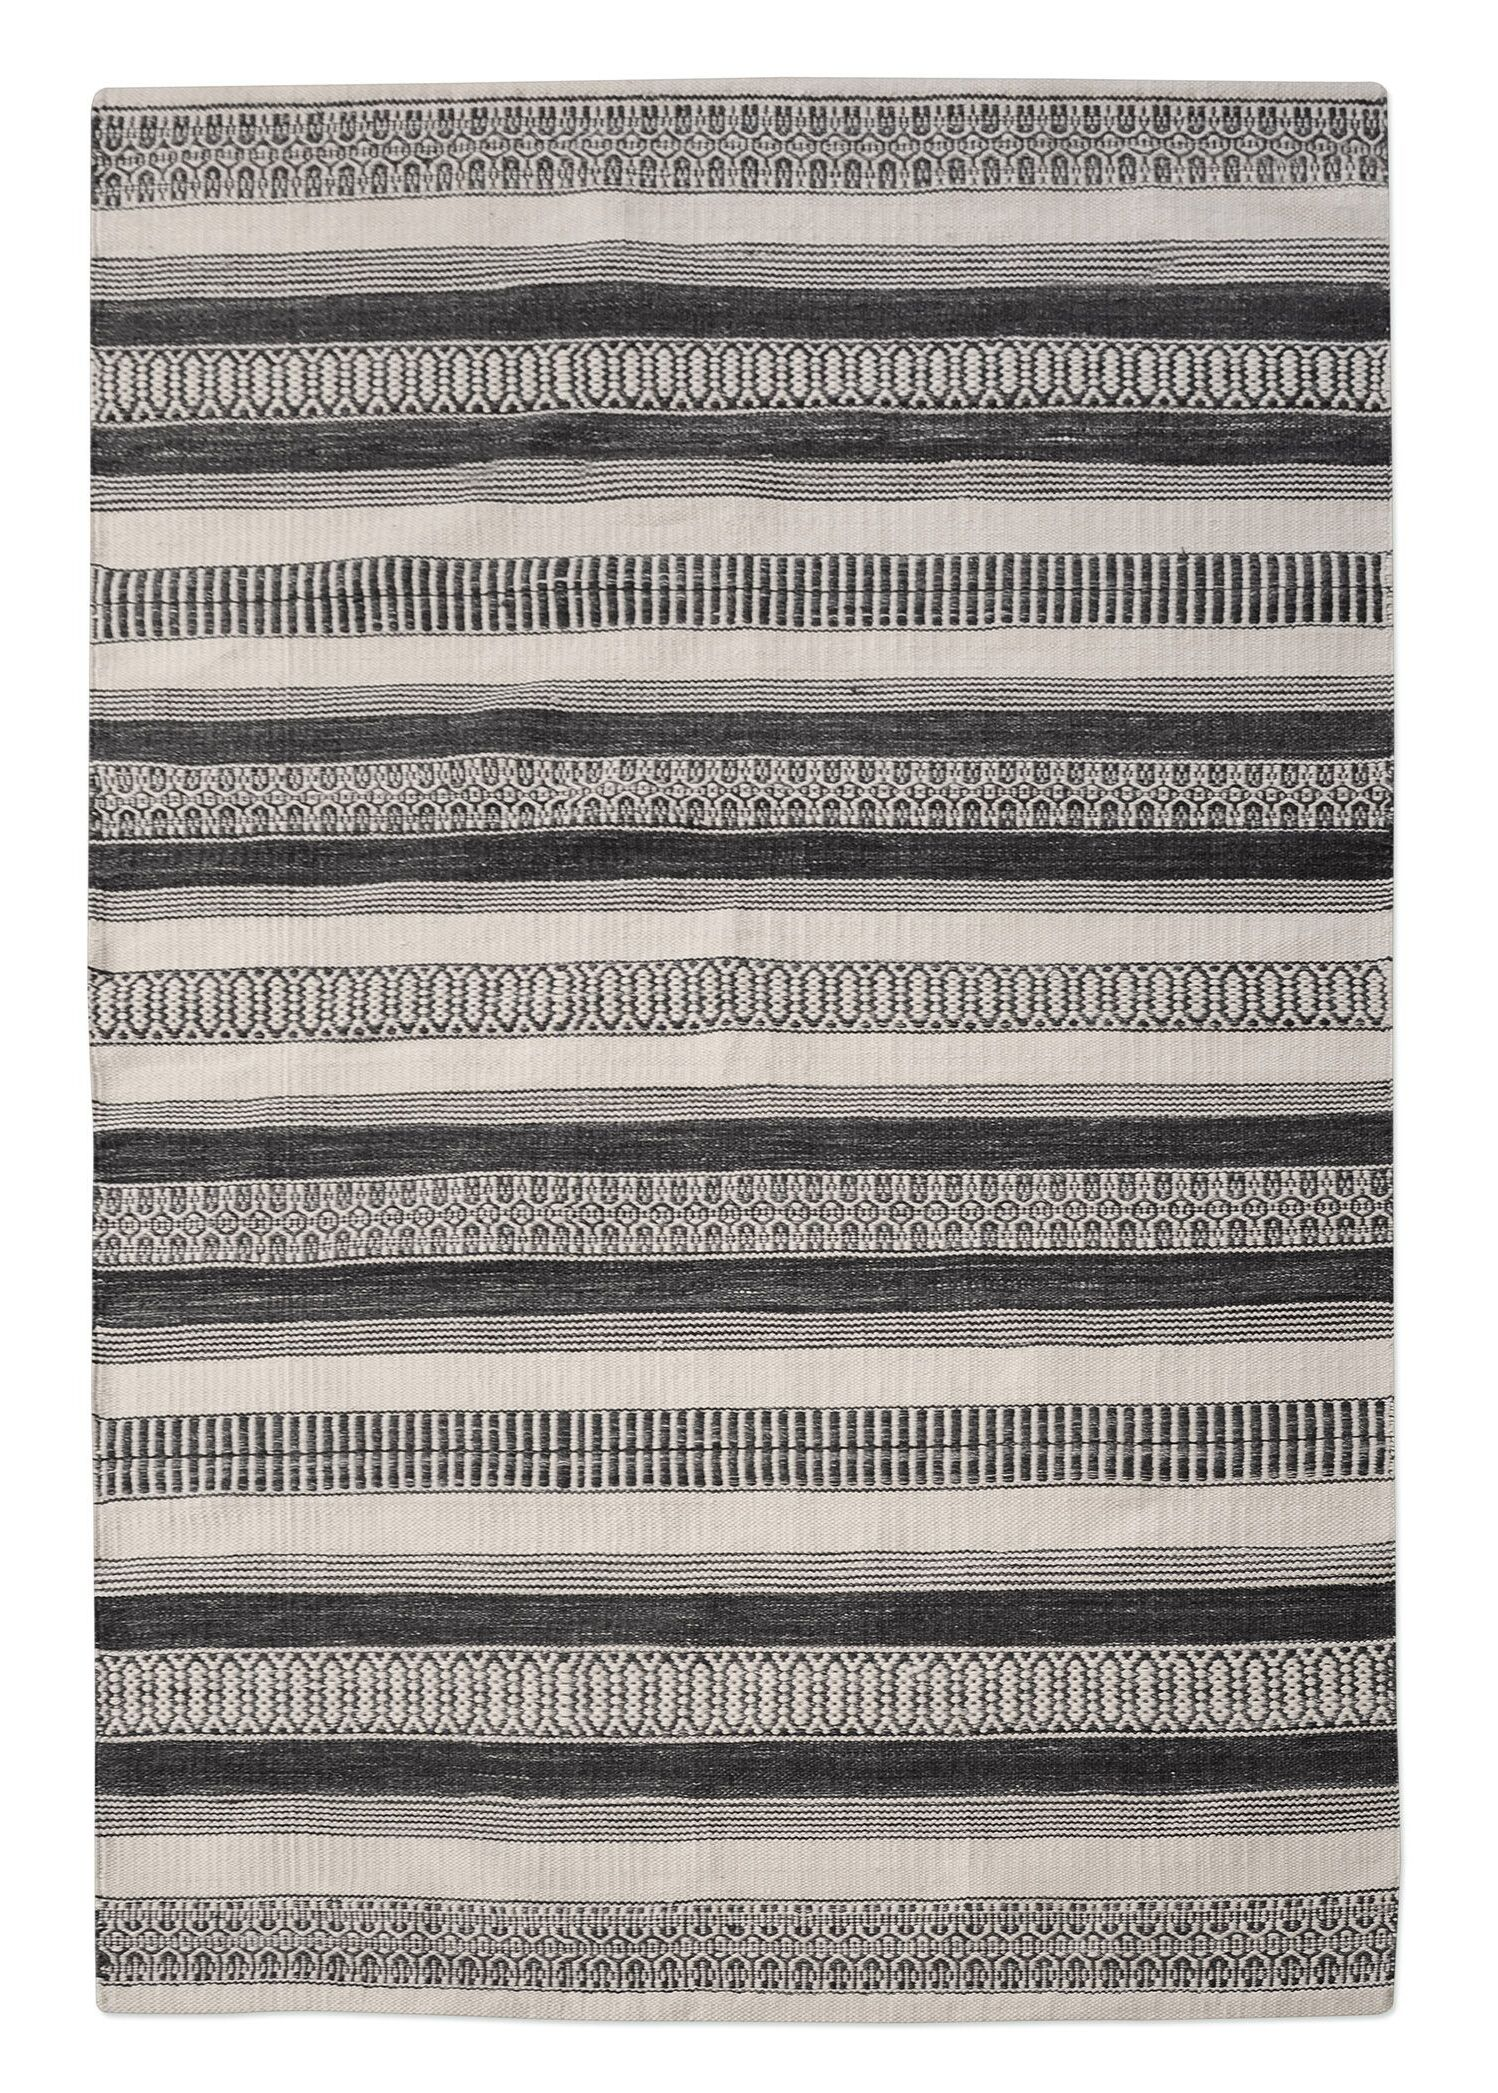 Colliers Hand-Woven Charcoal Indoor/Outdoor Area Rug Rug Size: 8' x 10'